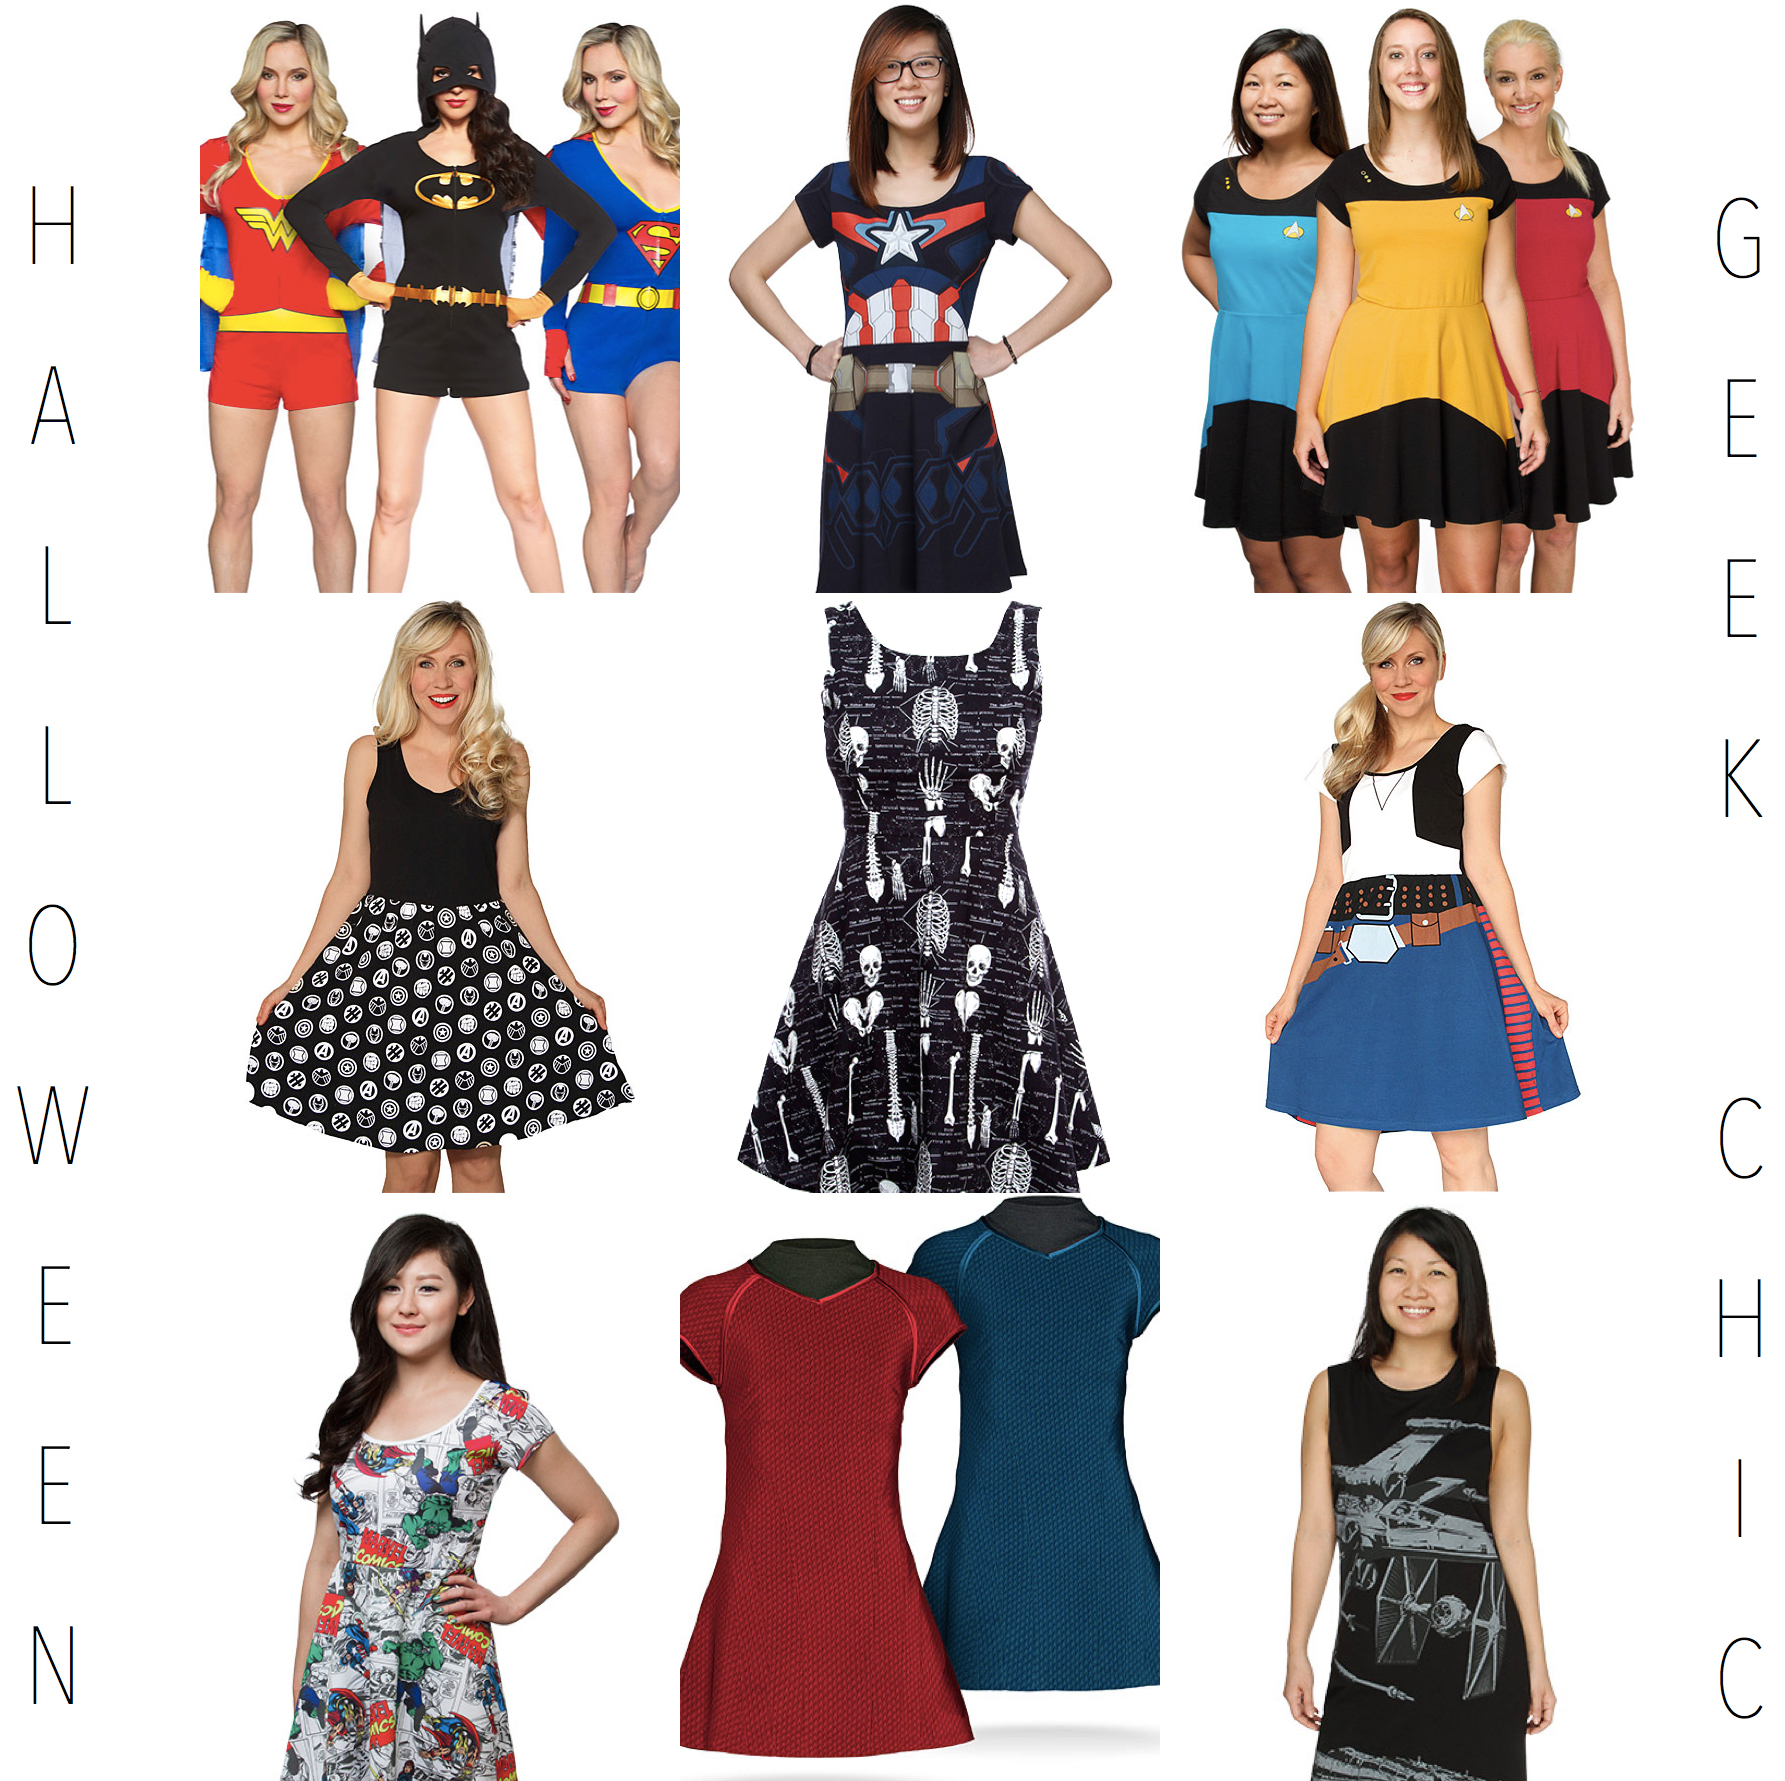 Halloween Costume Ideas for Teens | Tunic Tank Dresses | Comic Characters | GreatGets.com  sc 1 st  GreatGets.com & Halloween Costume Ideas for Teens | Tunic Tank Dresses | Comic ...